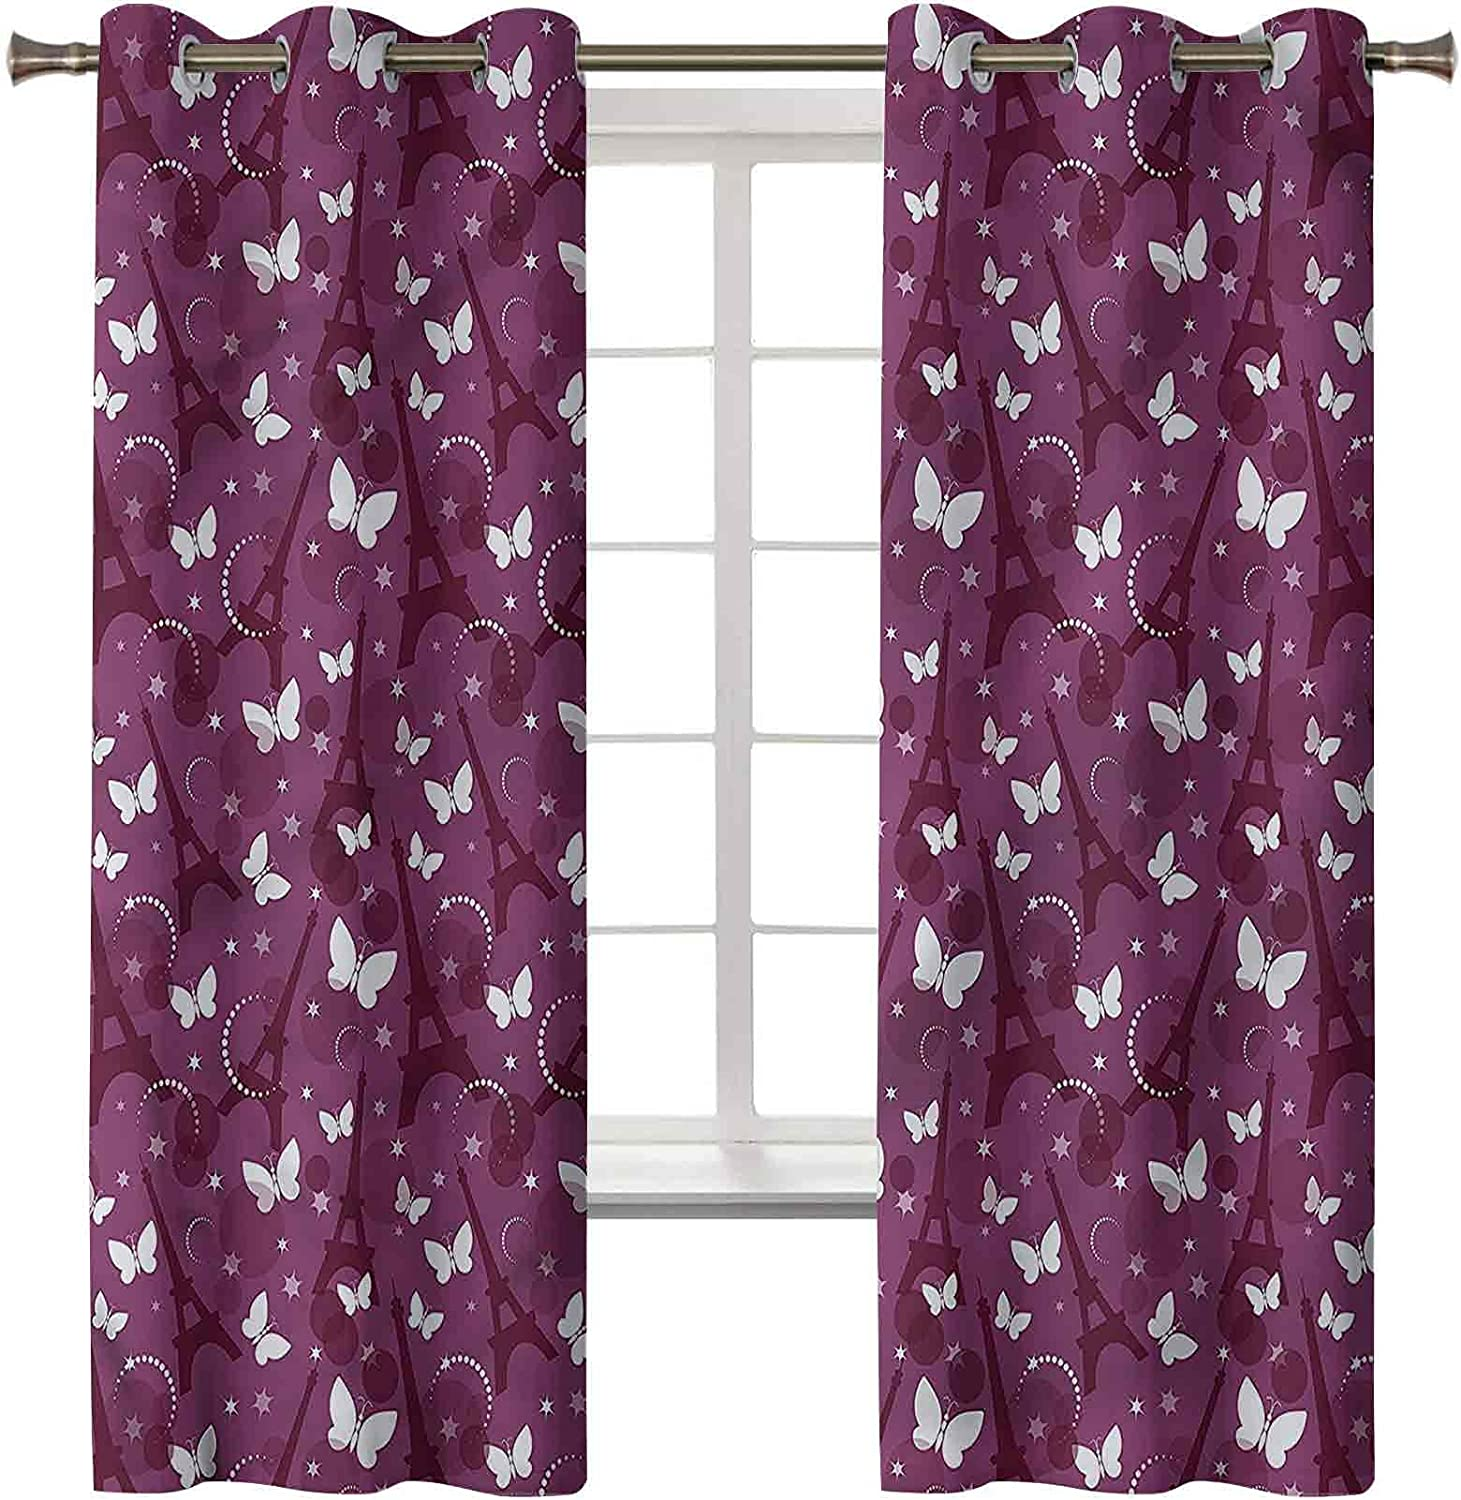 Blackout Curtains for Bedroom SEAL limited product Light Panel Ranking TOP10 Blocking Window Drape